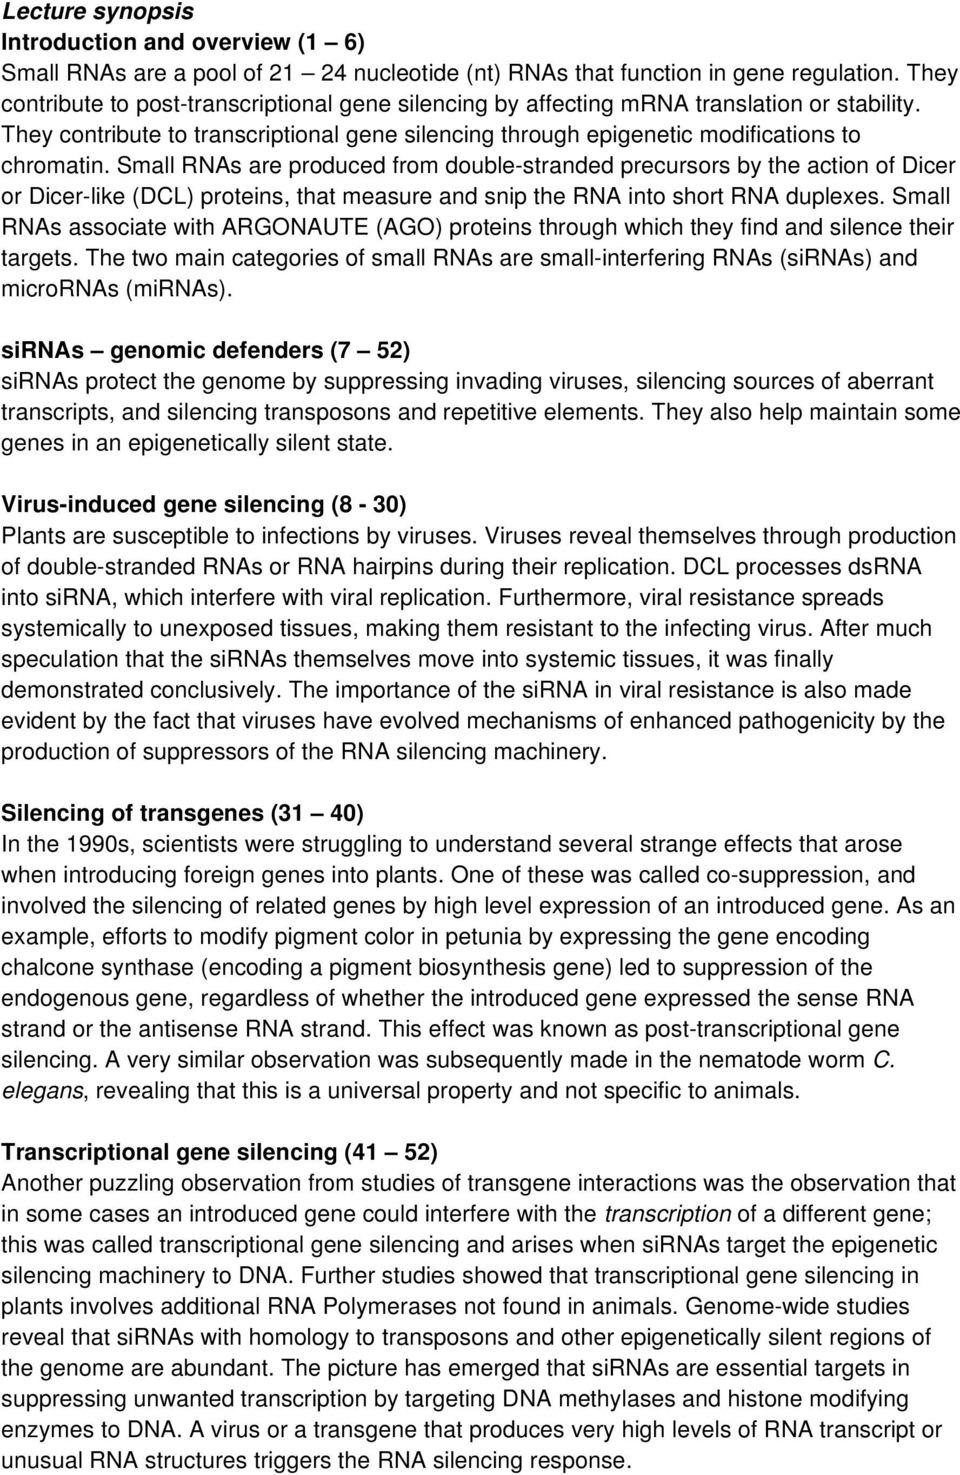 Small RNAs are produced from double-stranded precursors by the action of Dicer or Dicer-like (DCL) proteins, that measure and snip the RNA into short RNA duplexes.